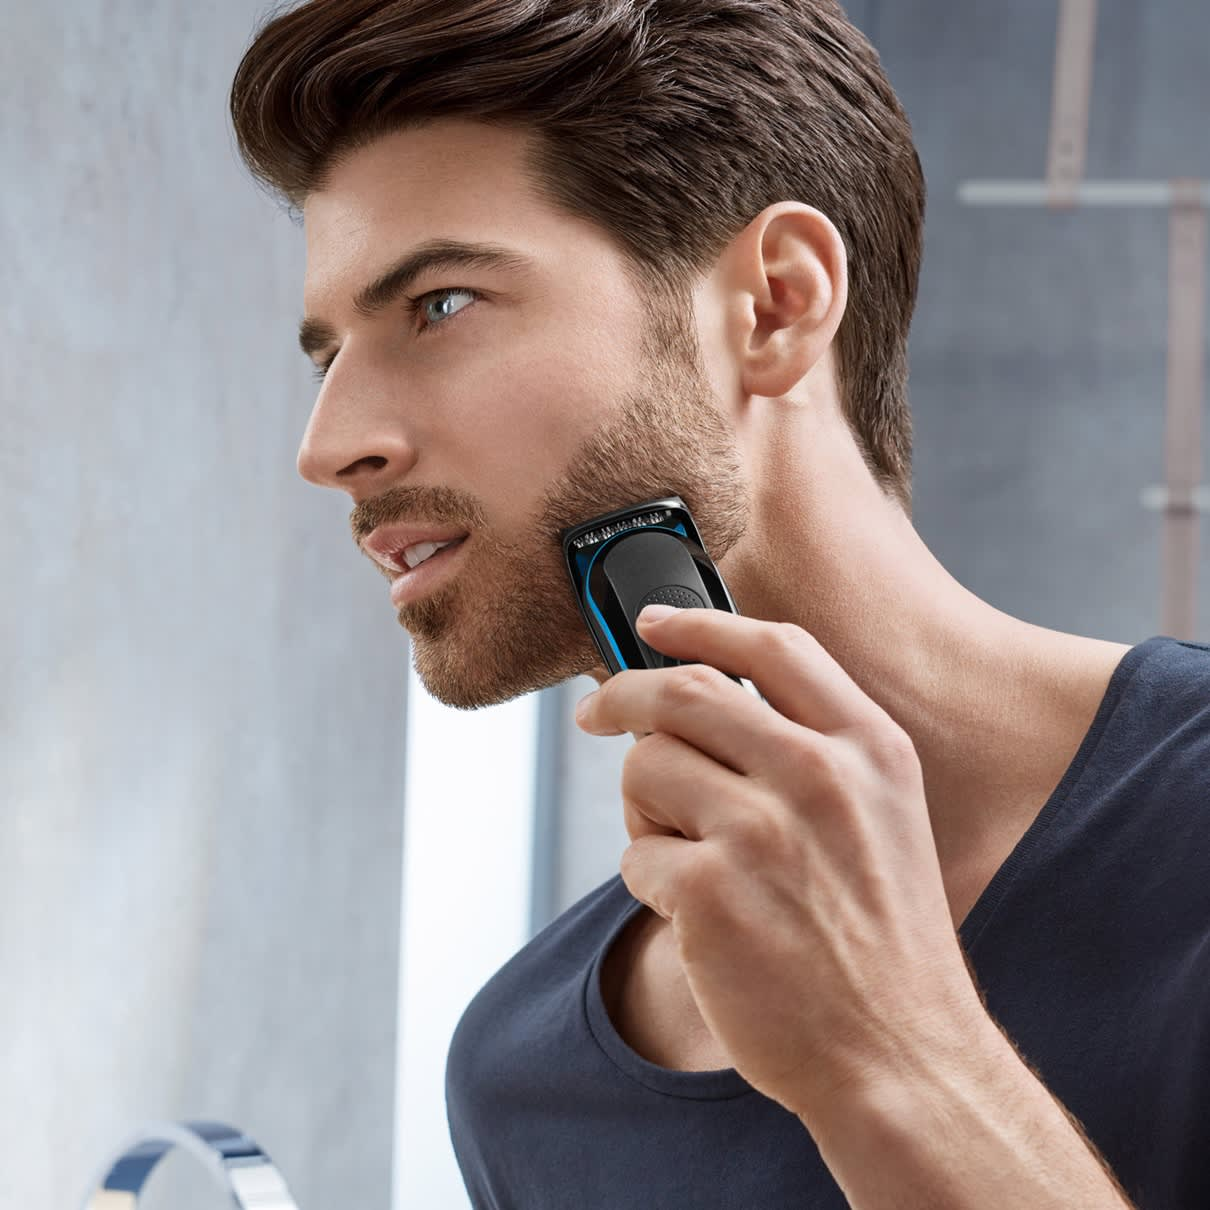 Braun multi grooming kit MGK3045 in use